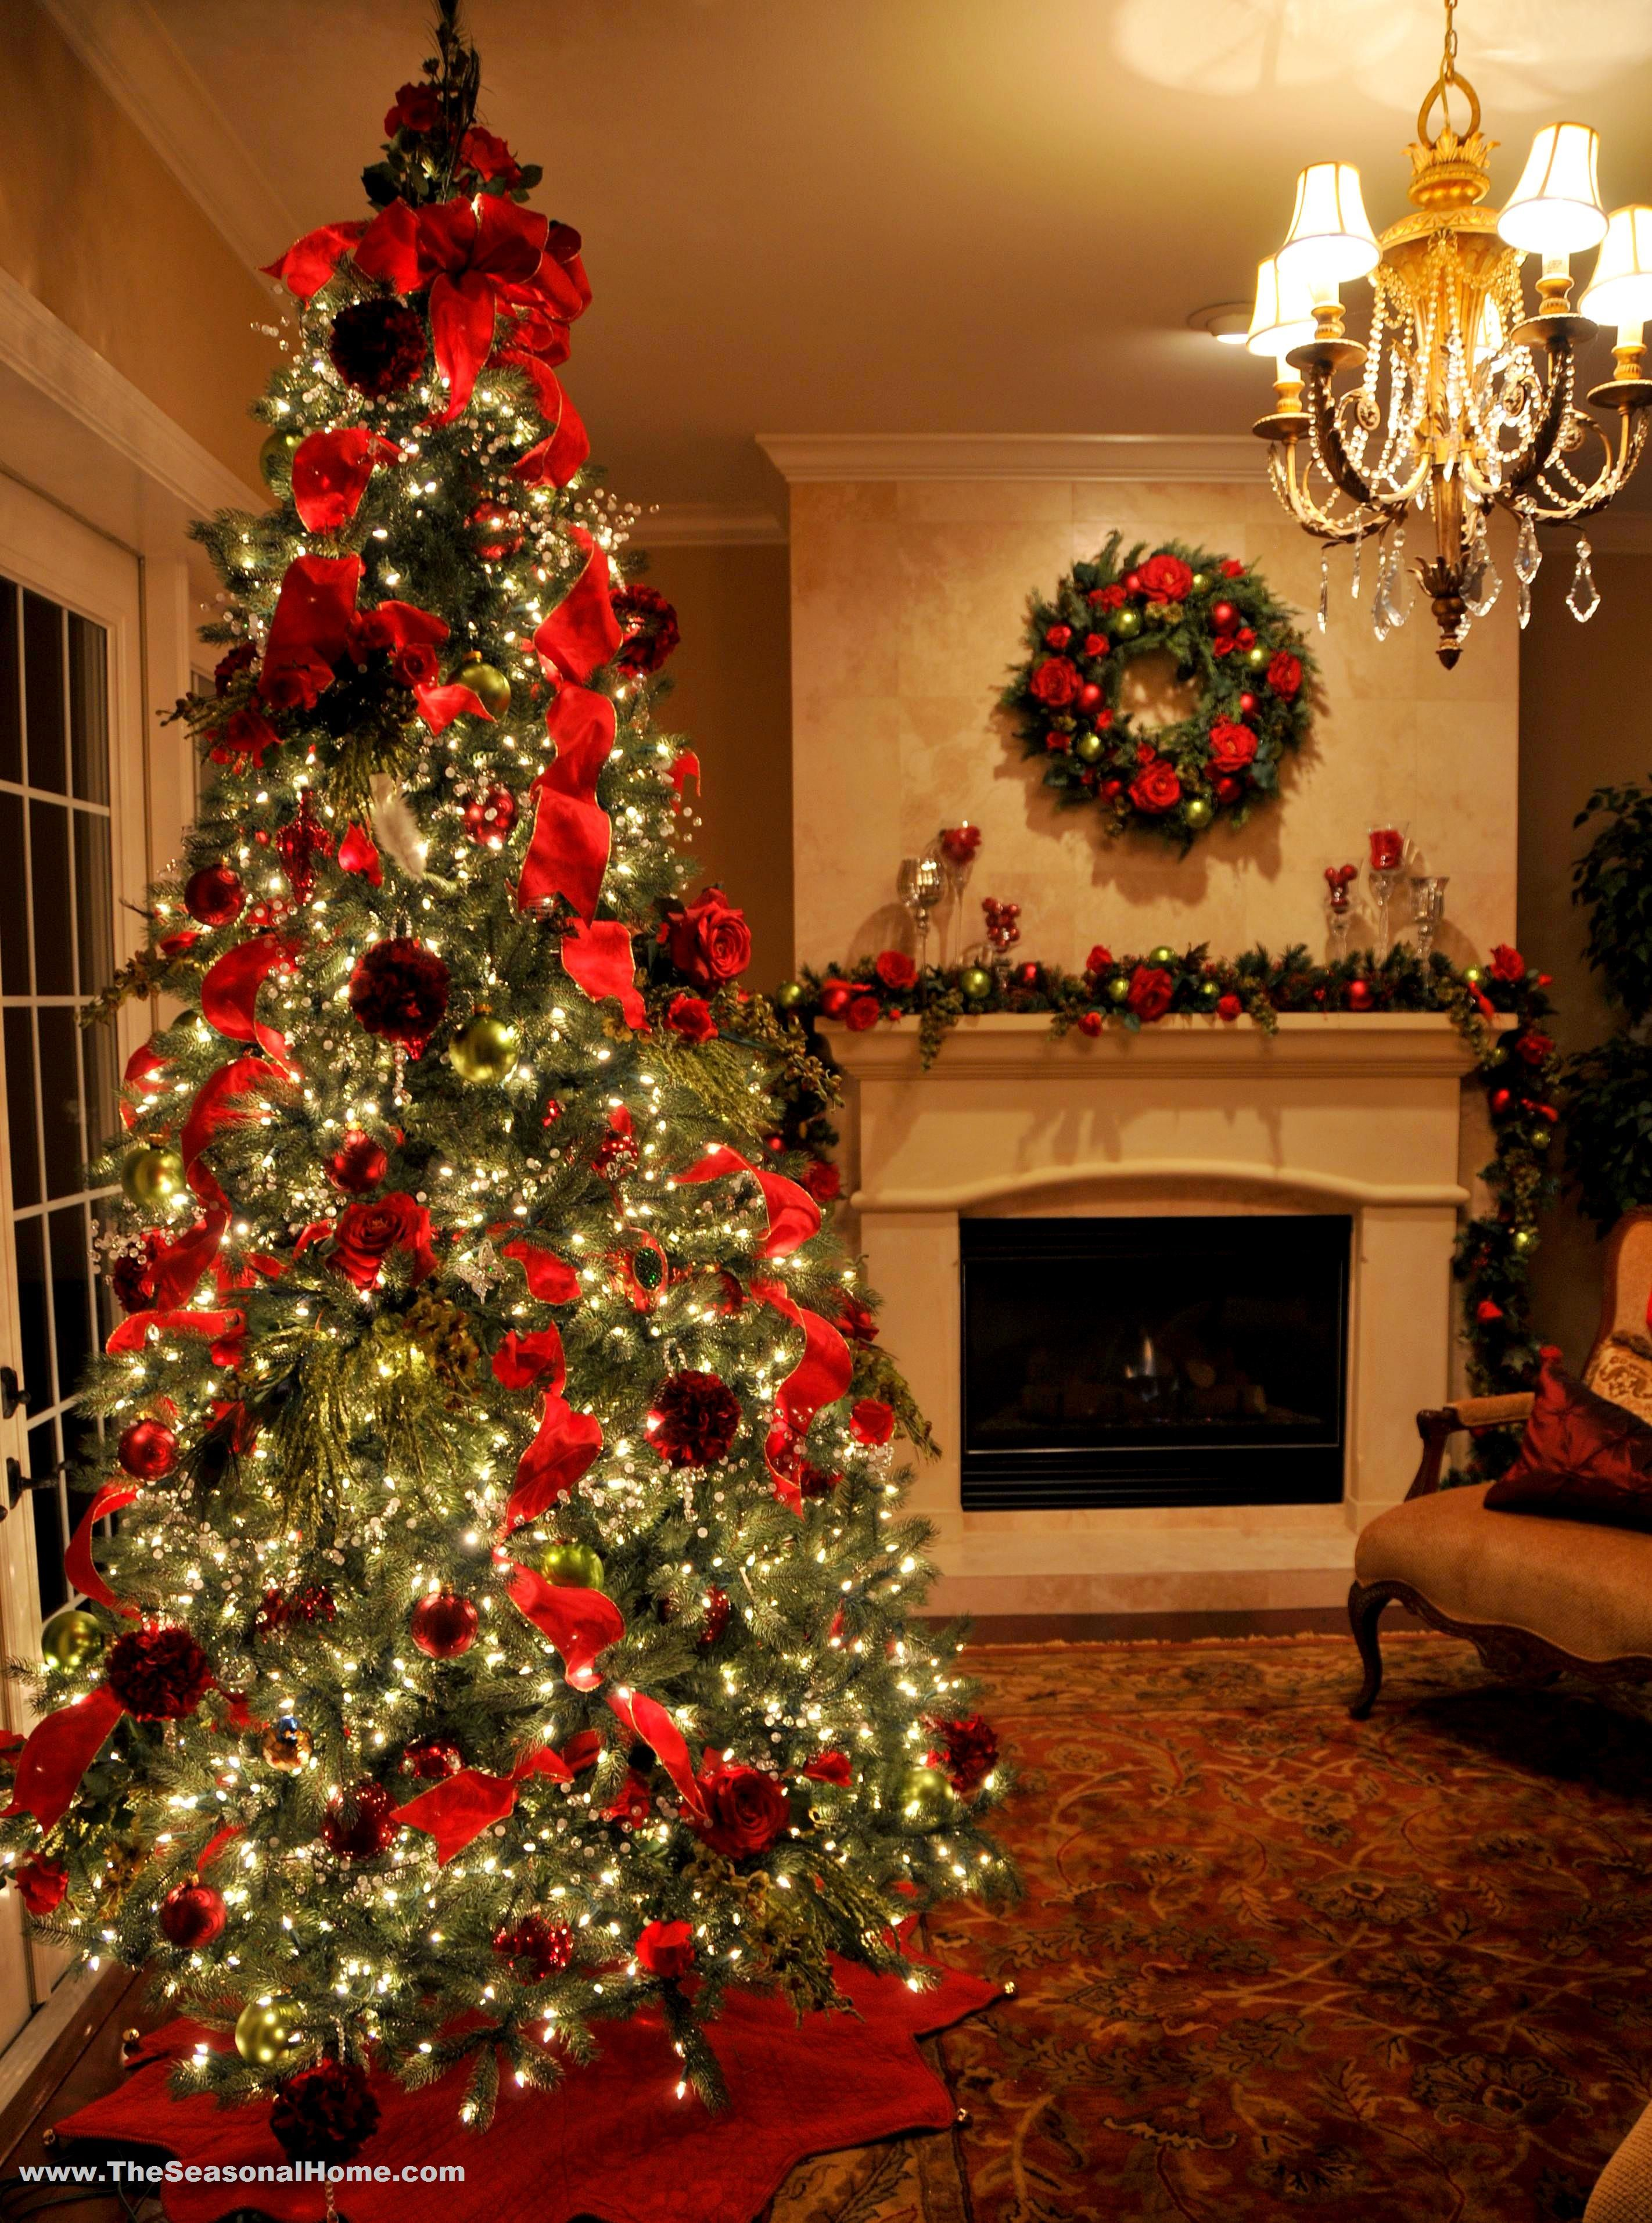 My Favorite Christmas Design This Year Elegant Christmas Trees Red And Gold Christmas Tree Christmas Tree And Fireplace